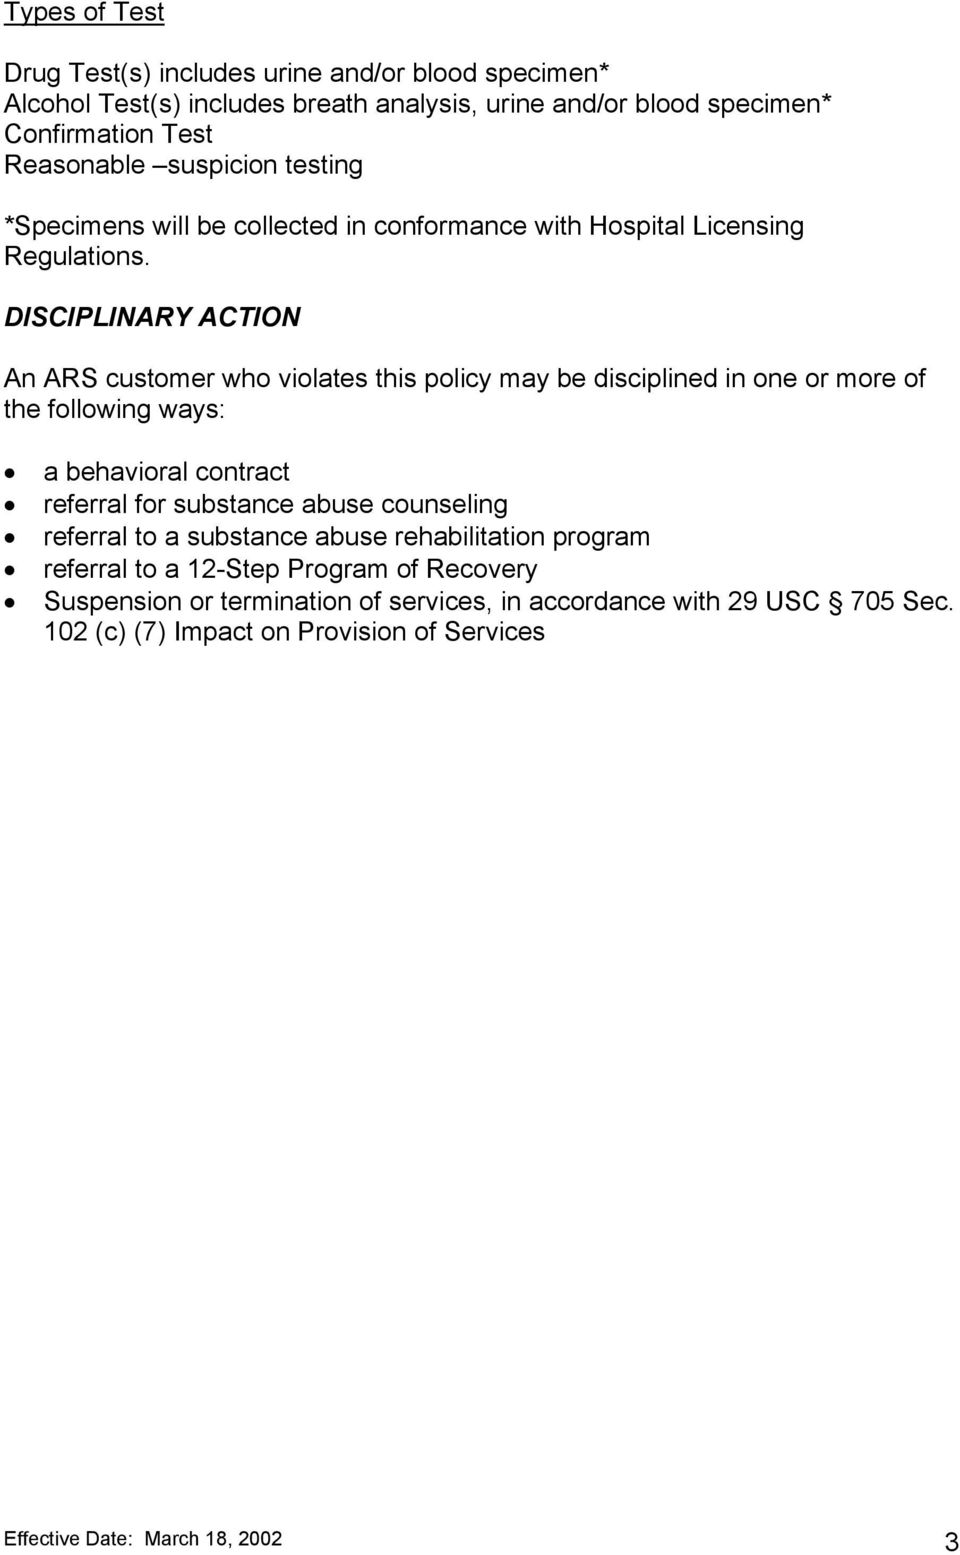 DISCIPLINARY ACTION An ARS customer who violates this policy may be disciplined in one or more of the following ways: a behavioral contract referral for substance abuse